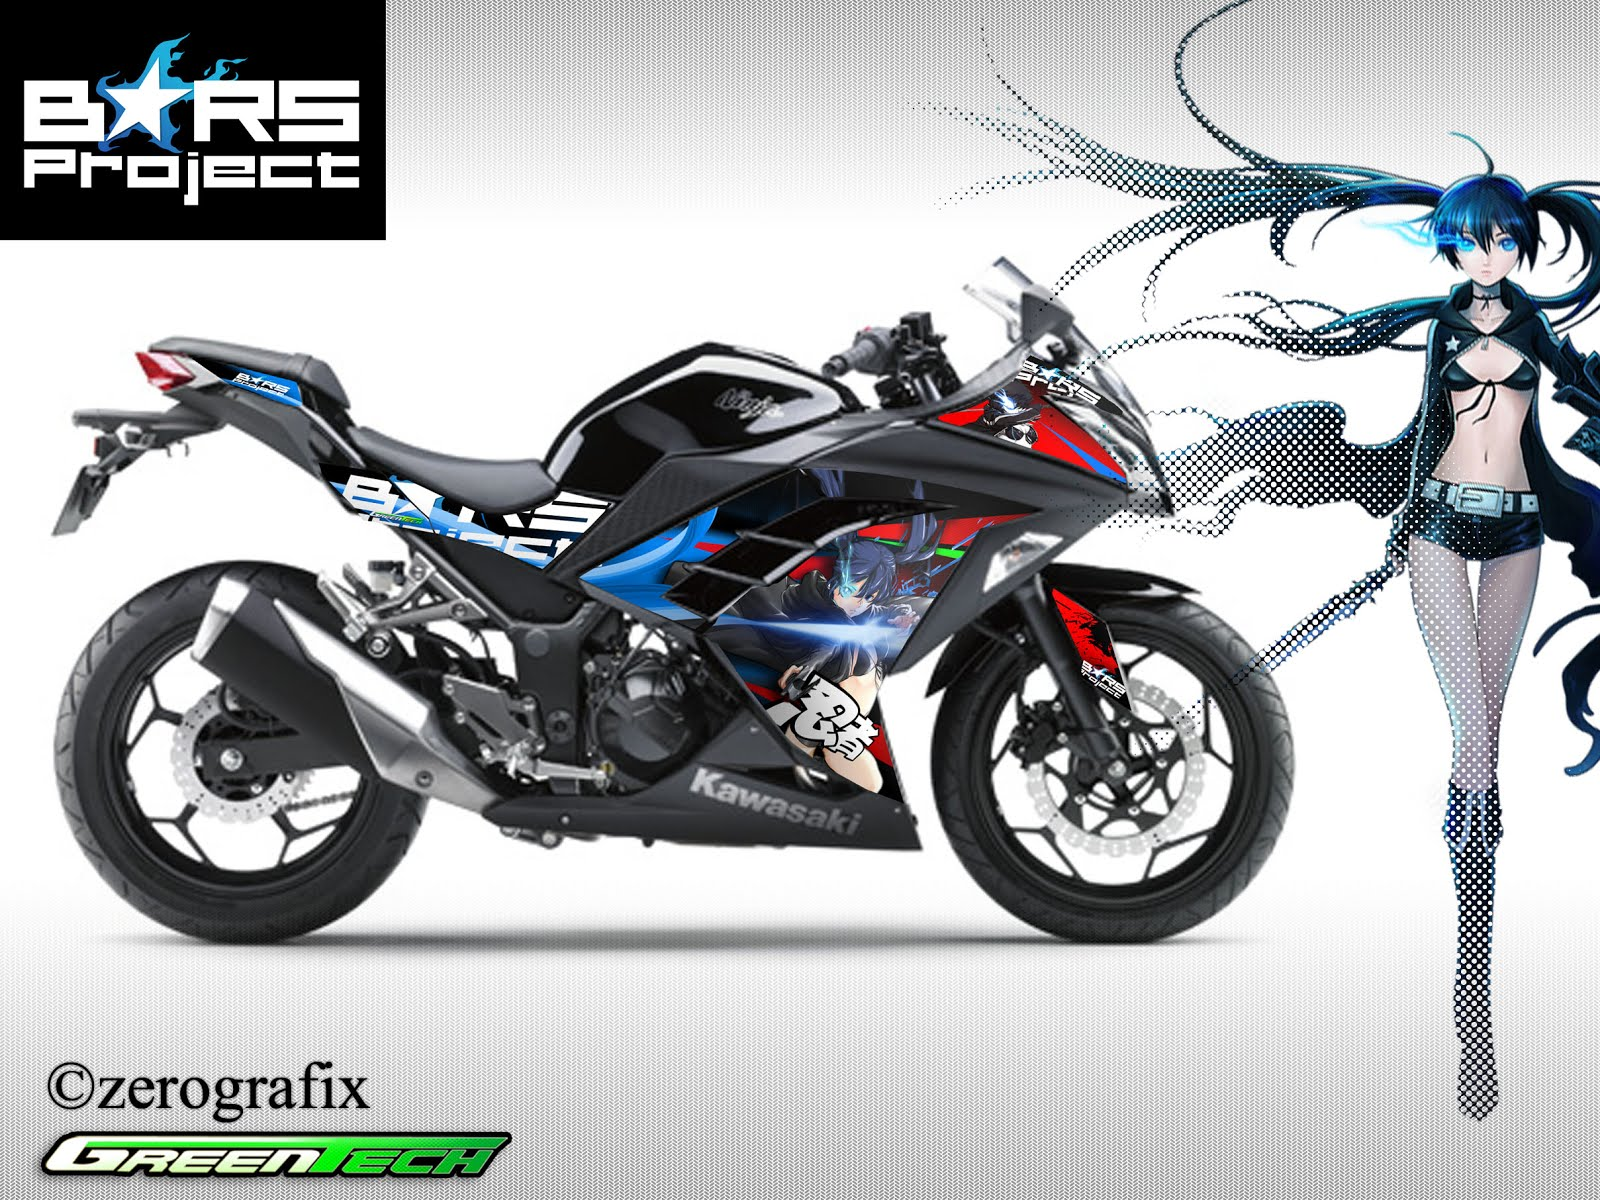 Performance and bodywork parts Ninja 250 by Joo0 [Pindahan dr KASK*S.com] Black%2Brock%2Bshooter%2Bcopy